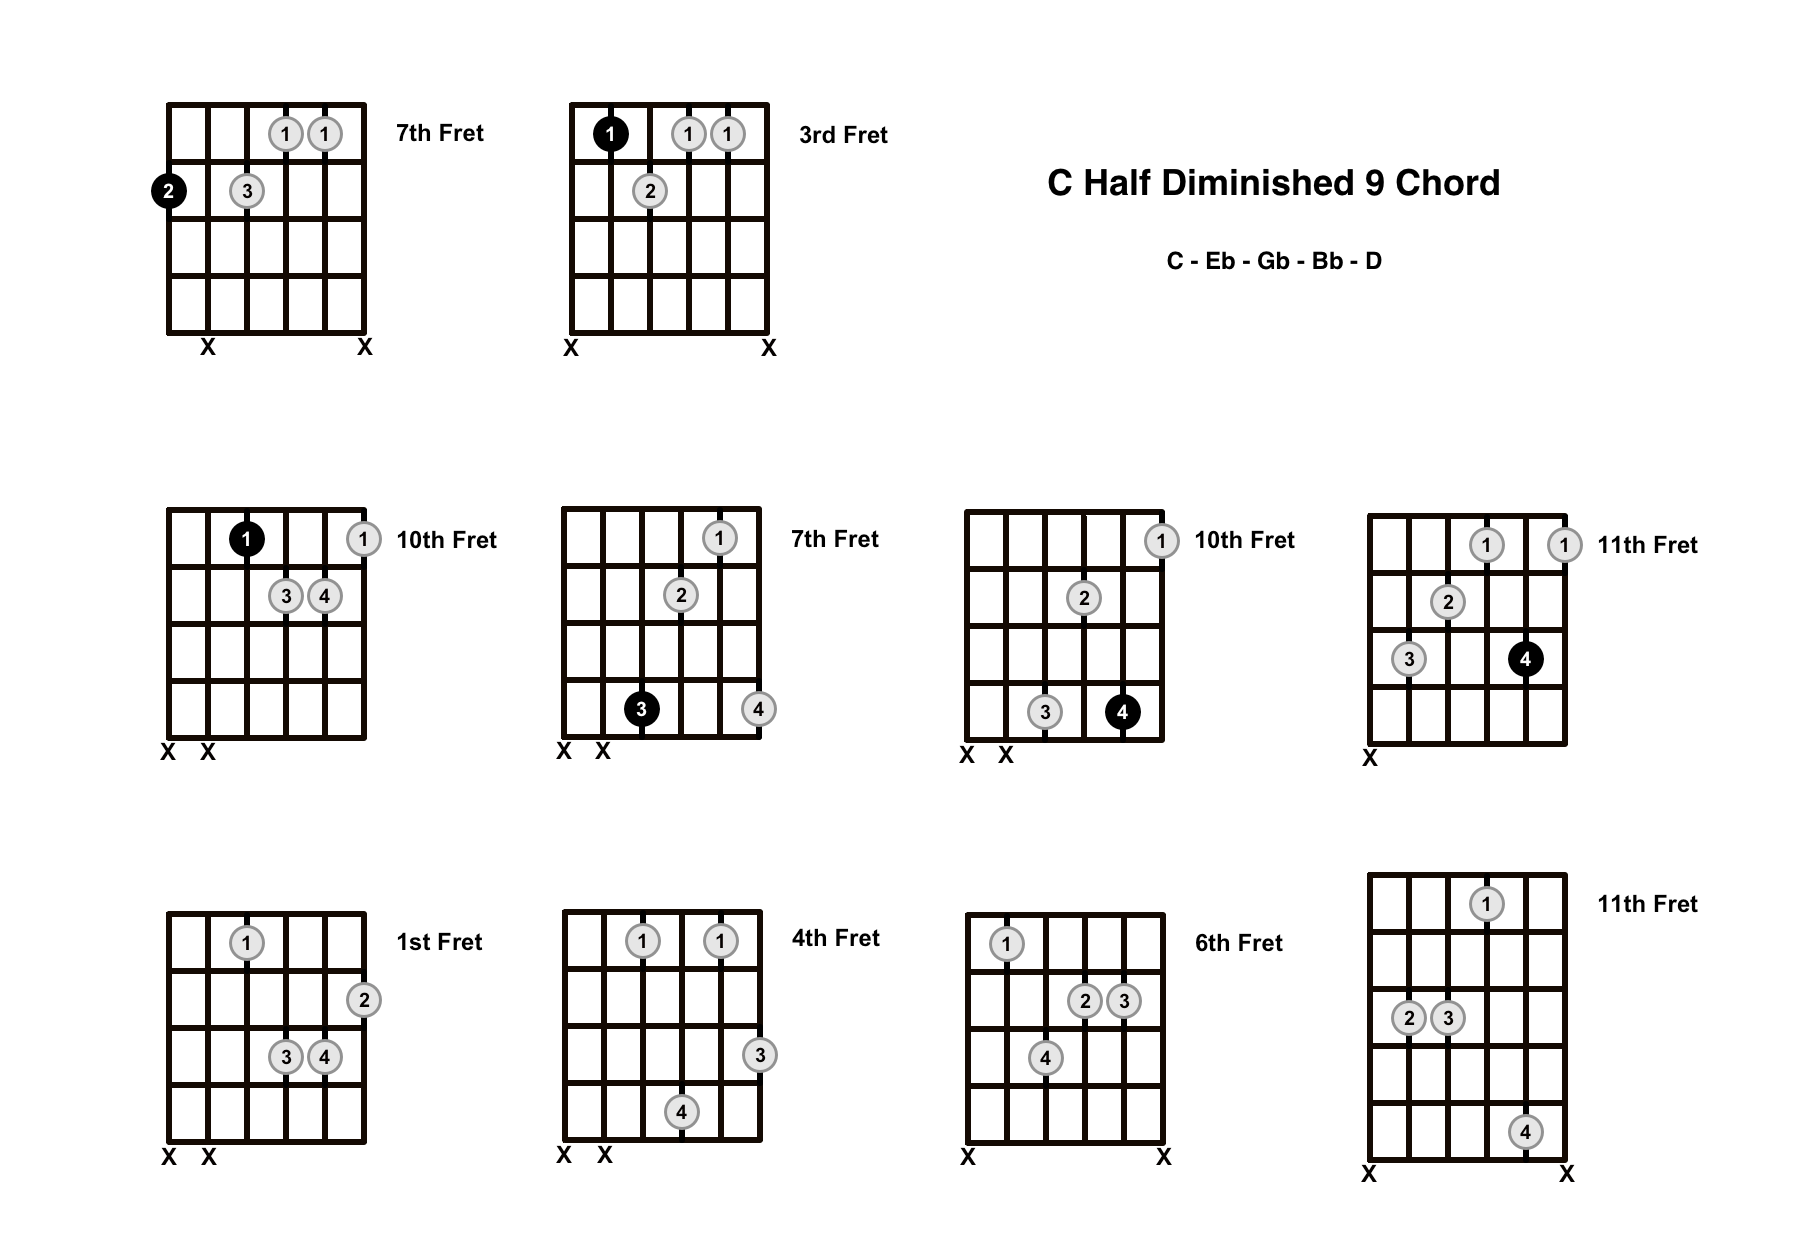 Cm9b5 Chord On The Guitar (C Half Diminished 9) – Diagrams, Finger Positions and Theory